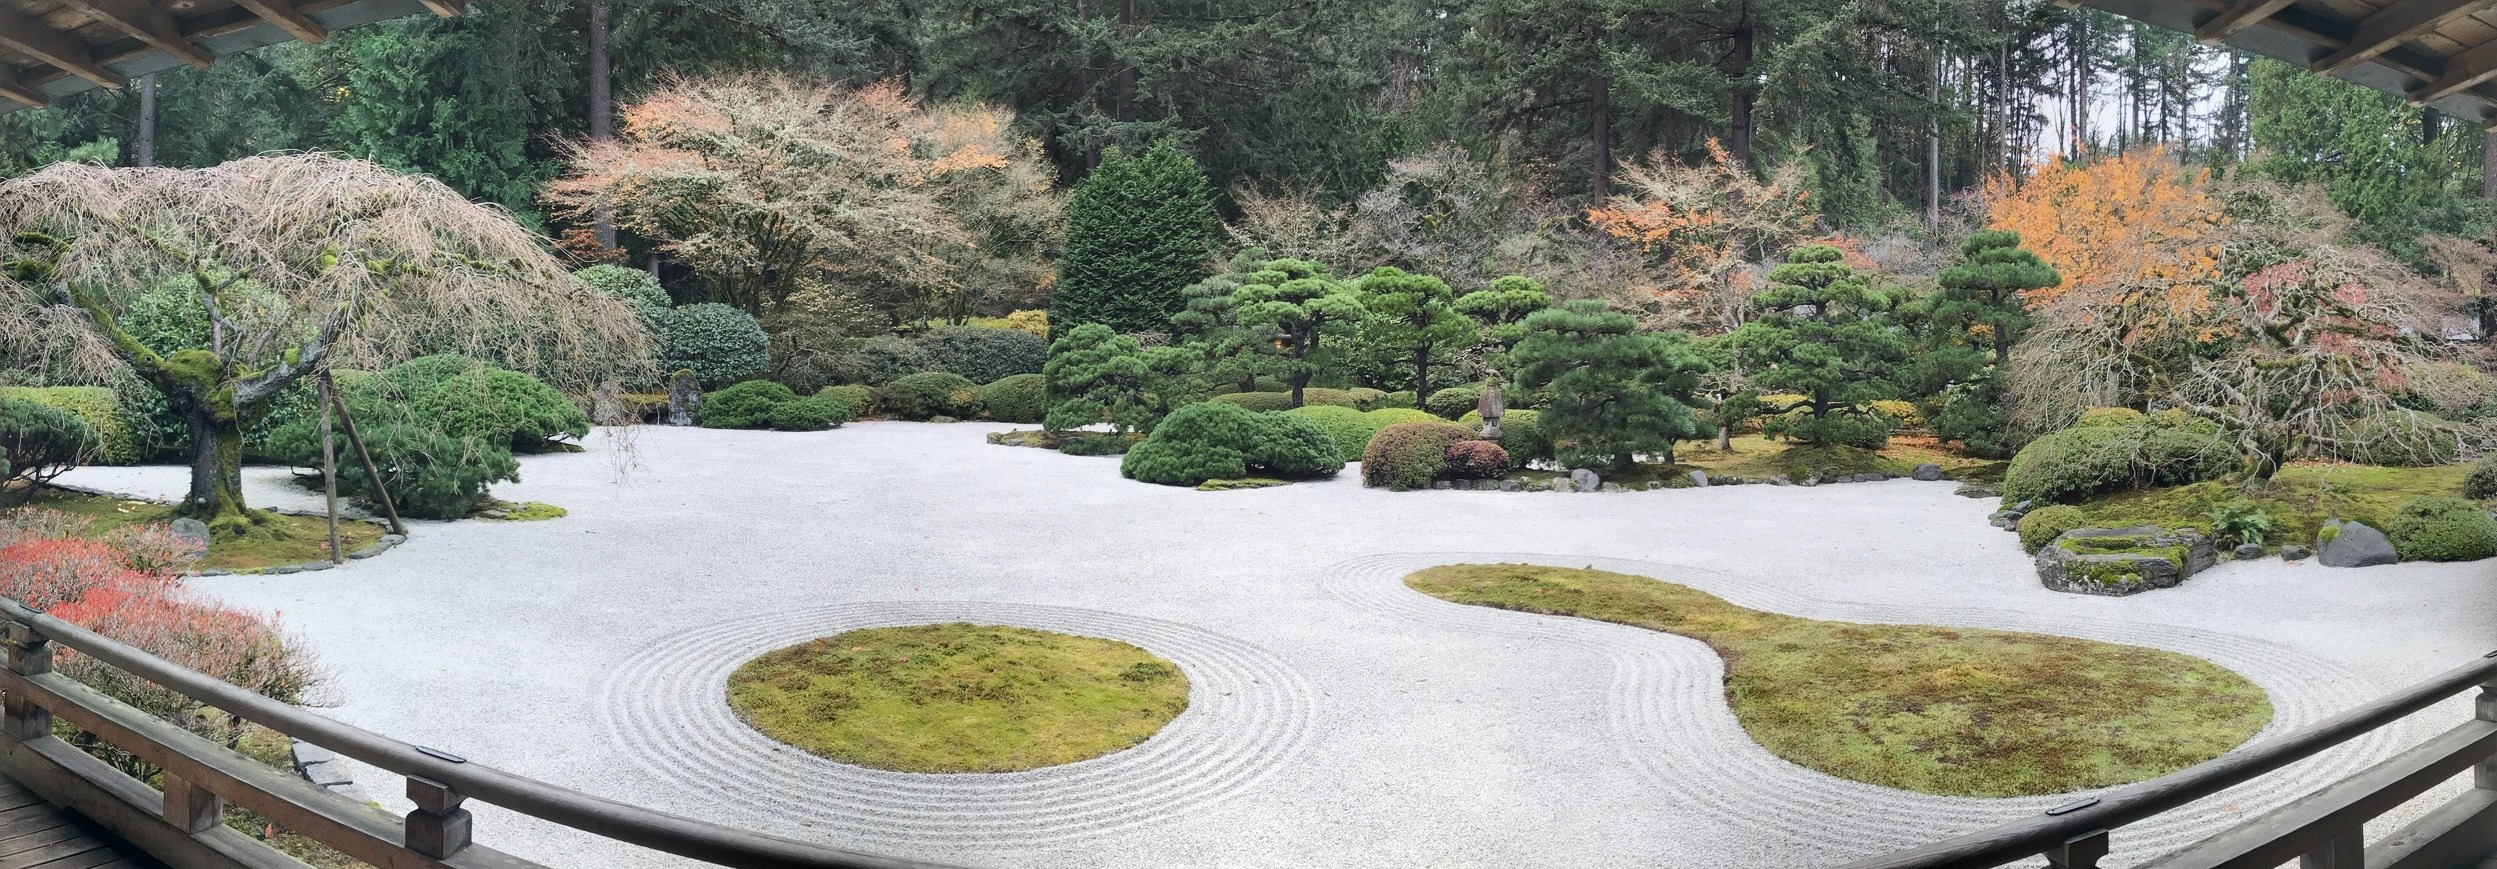 """Panoramic image of the    """"Flat Garden""""    at Portland's Japanese Garden."""